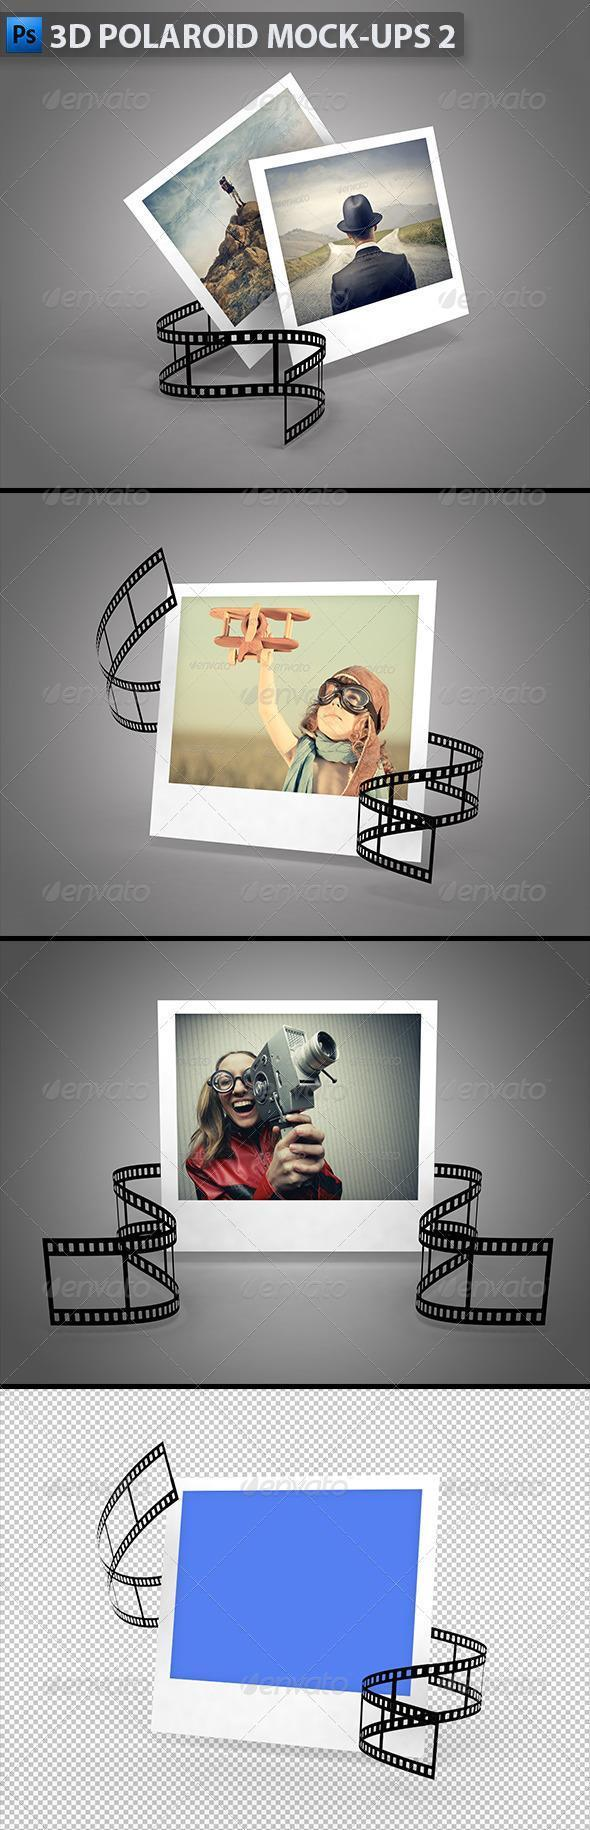 3D polaroid film strip mockups